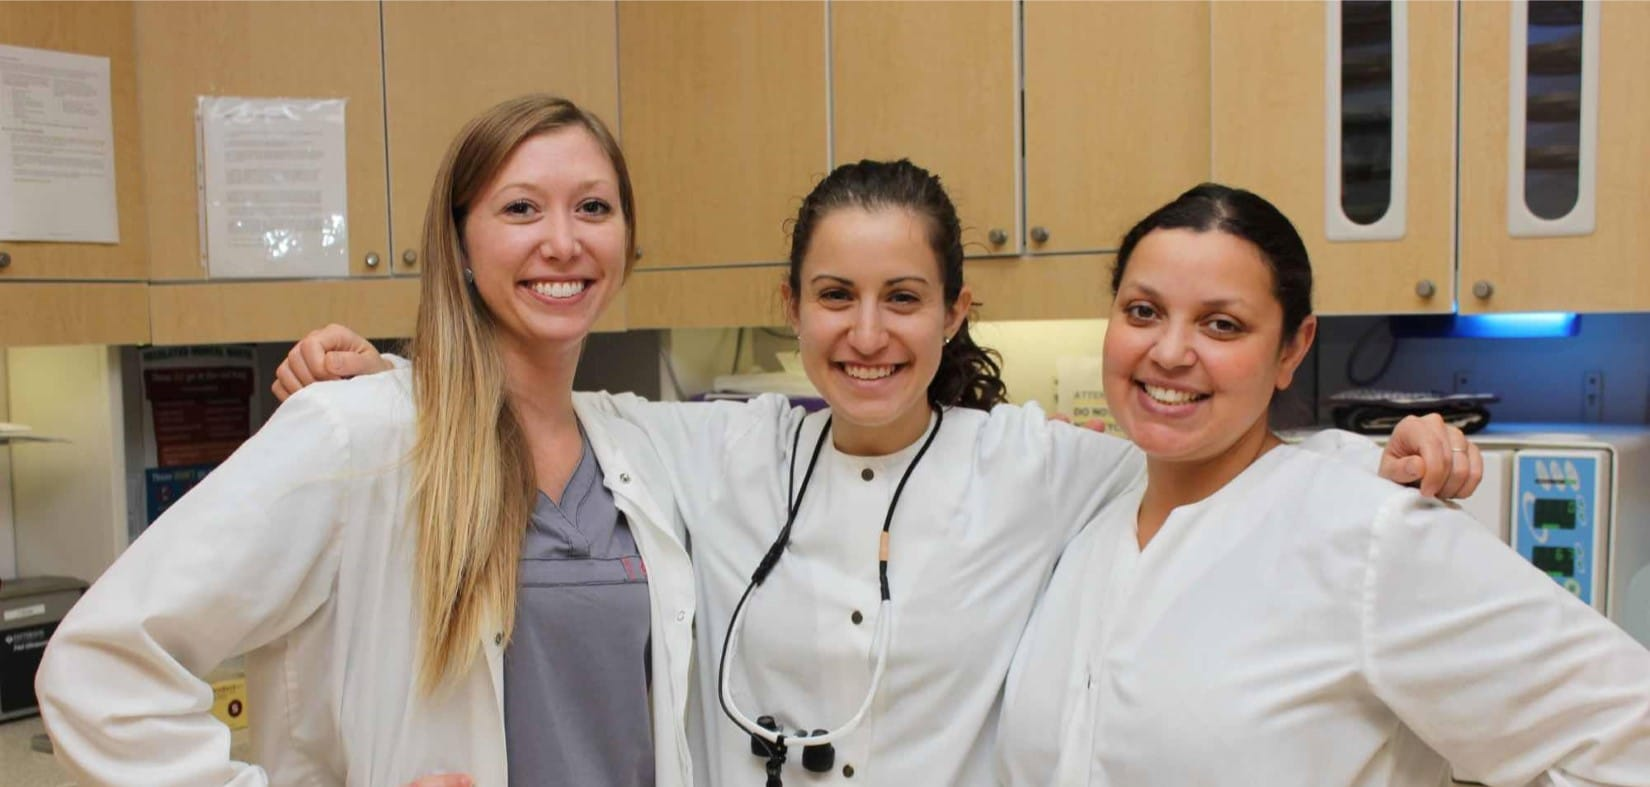 Dental assistant Samantha Ruble with hygienists Laura Steinmetz and Mistie Dodson in Winchester Dental's in-office lab